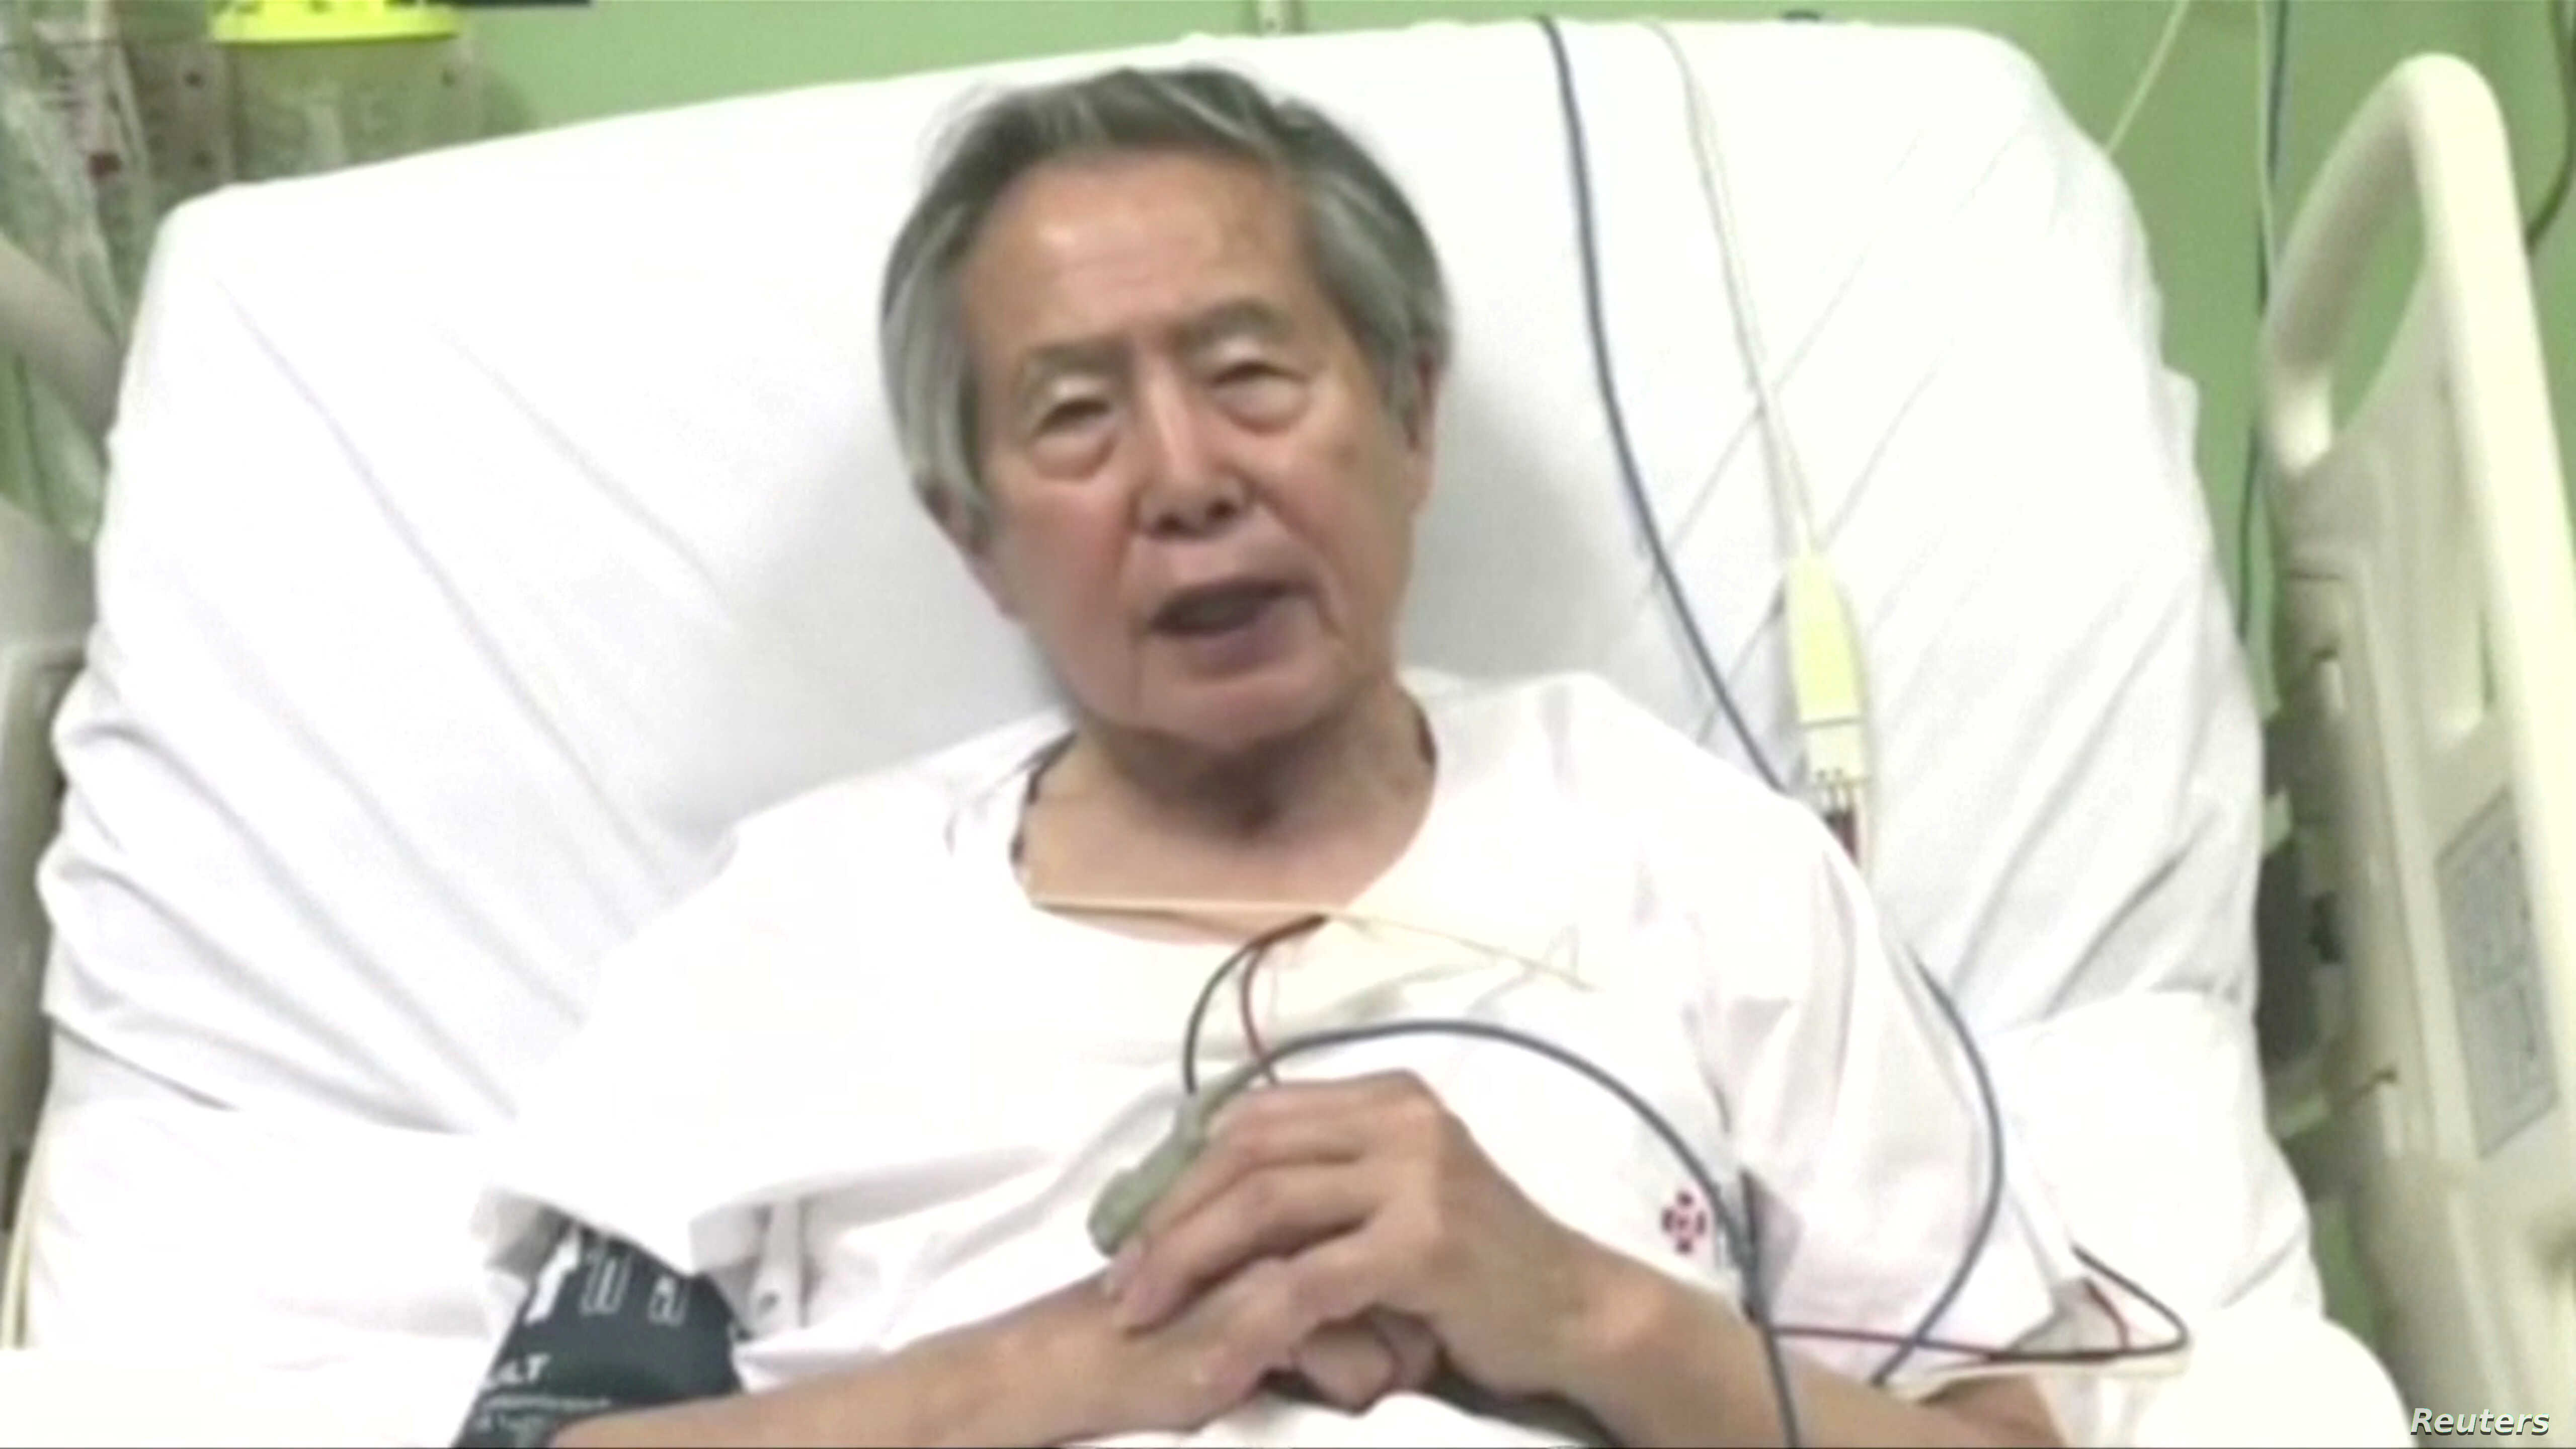 Peru's former President Alberto Fujimori asks for forgiveness from Peruvians as he lies in hospital bed in Lima, Peru, in this still image taken from a video posted on Facebook on Dec. 26, 2017.